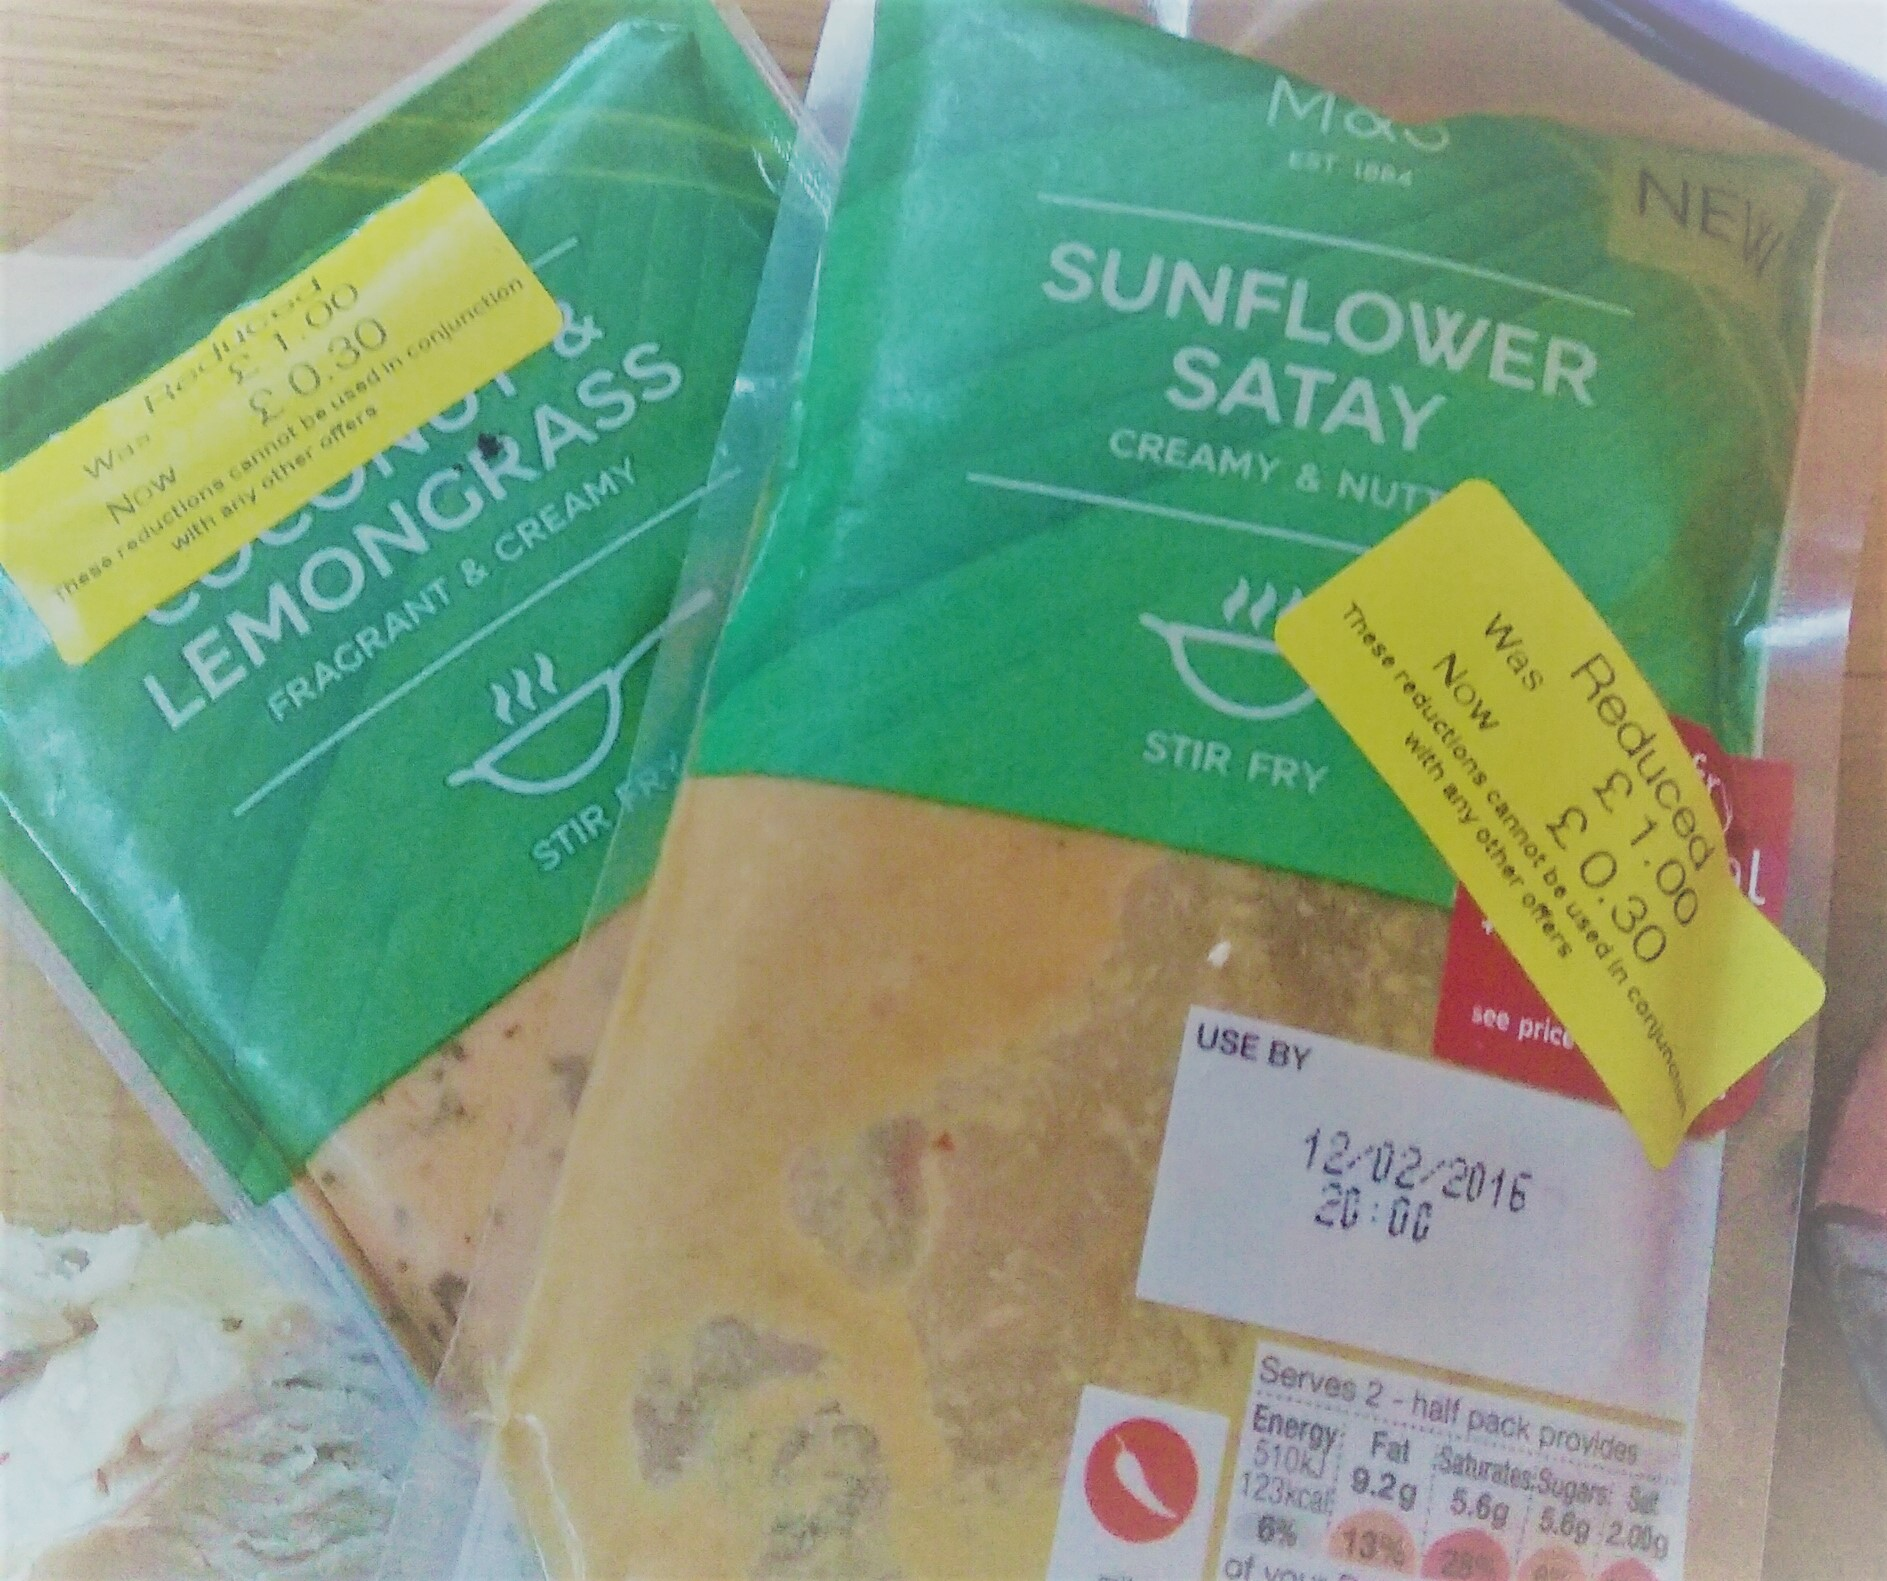 sunflower satay with yellow reduced stickers on